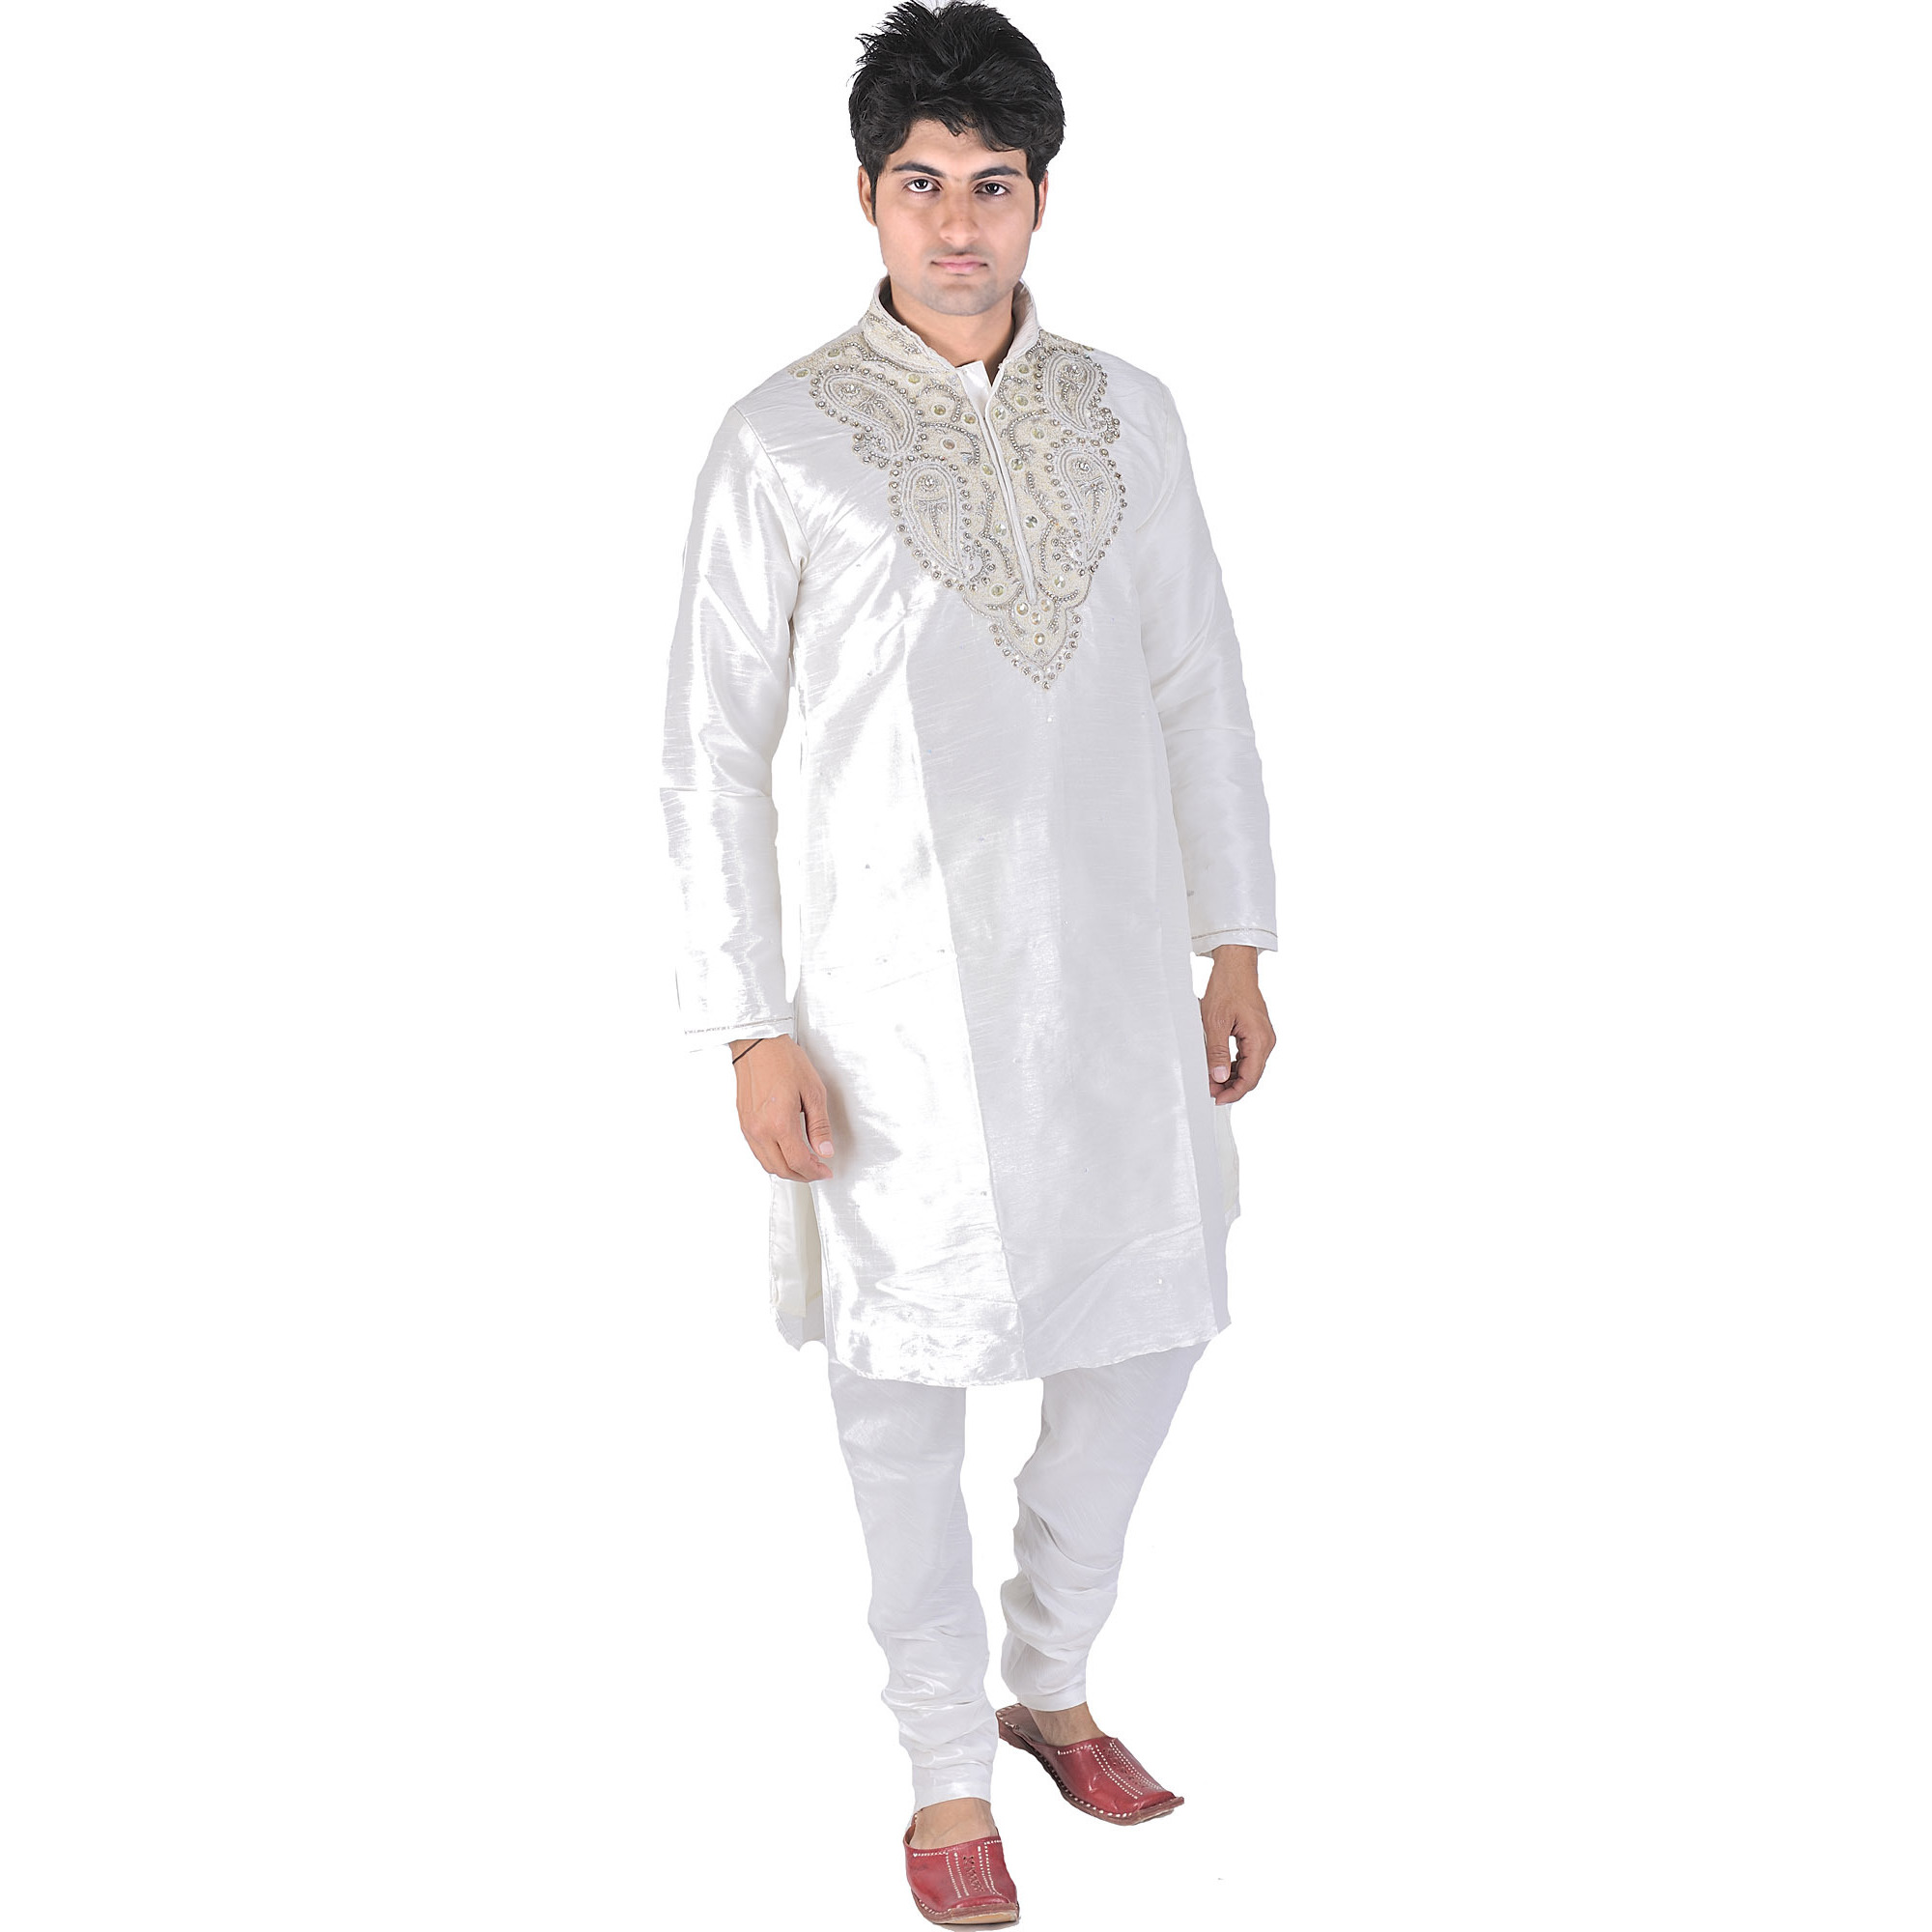 White Wedding Kurta Pajama with Zardozi and Beads Embroidered on Neck